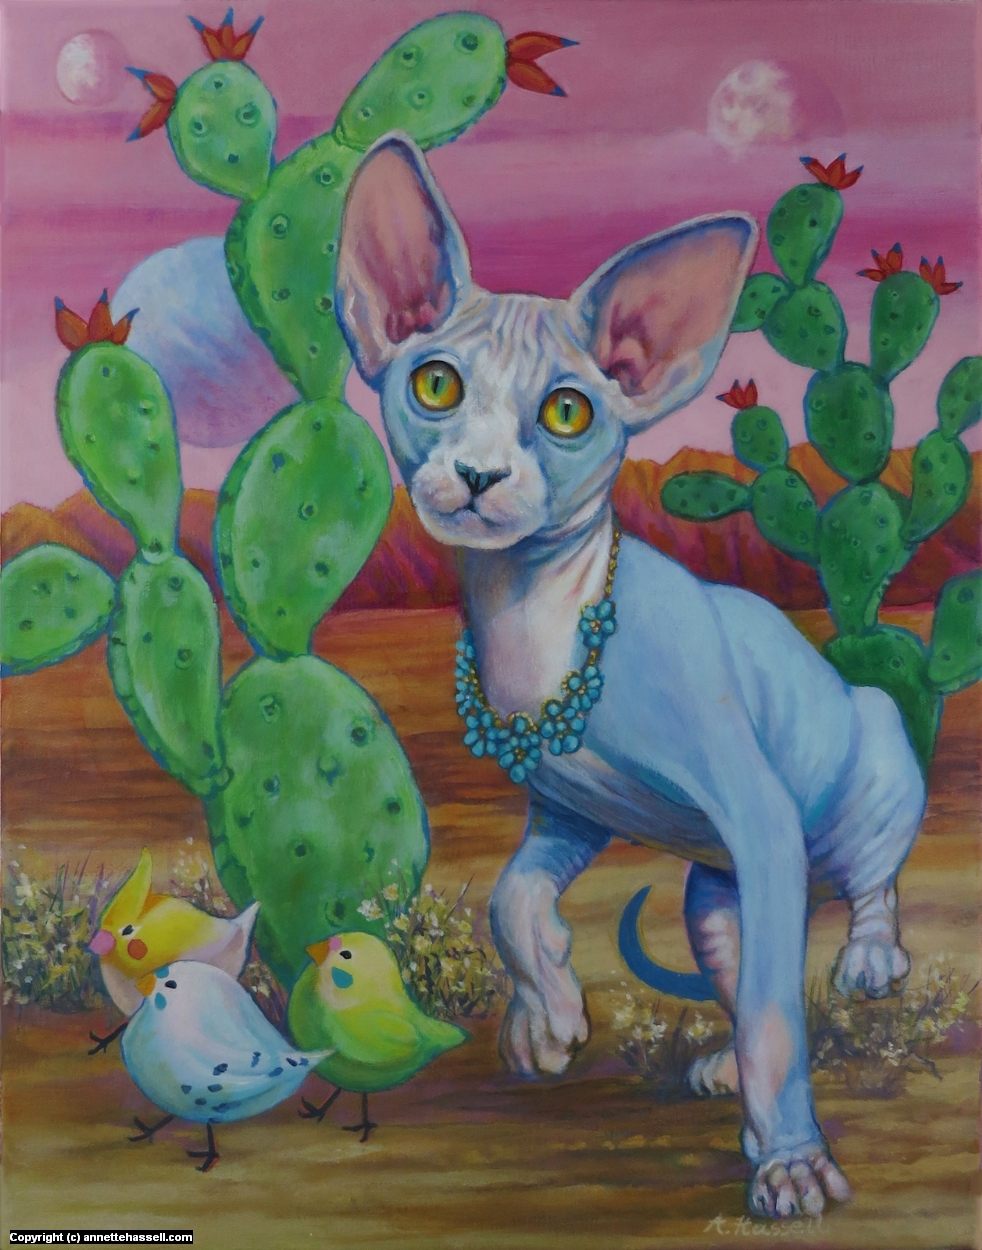 Kitty Kitty Artwork by Annette Hassell